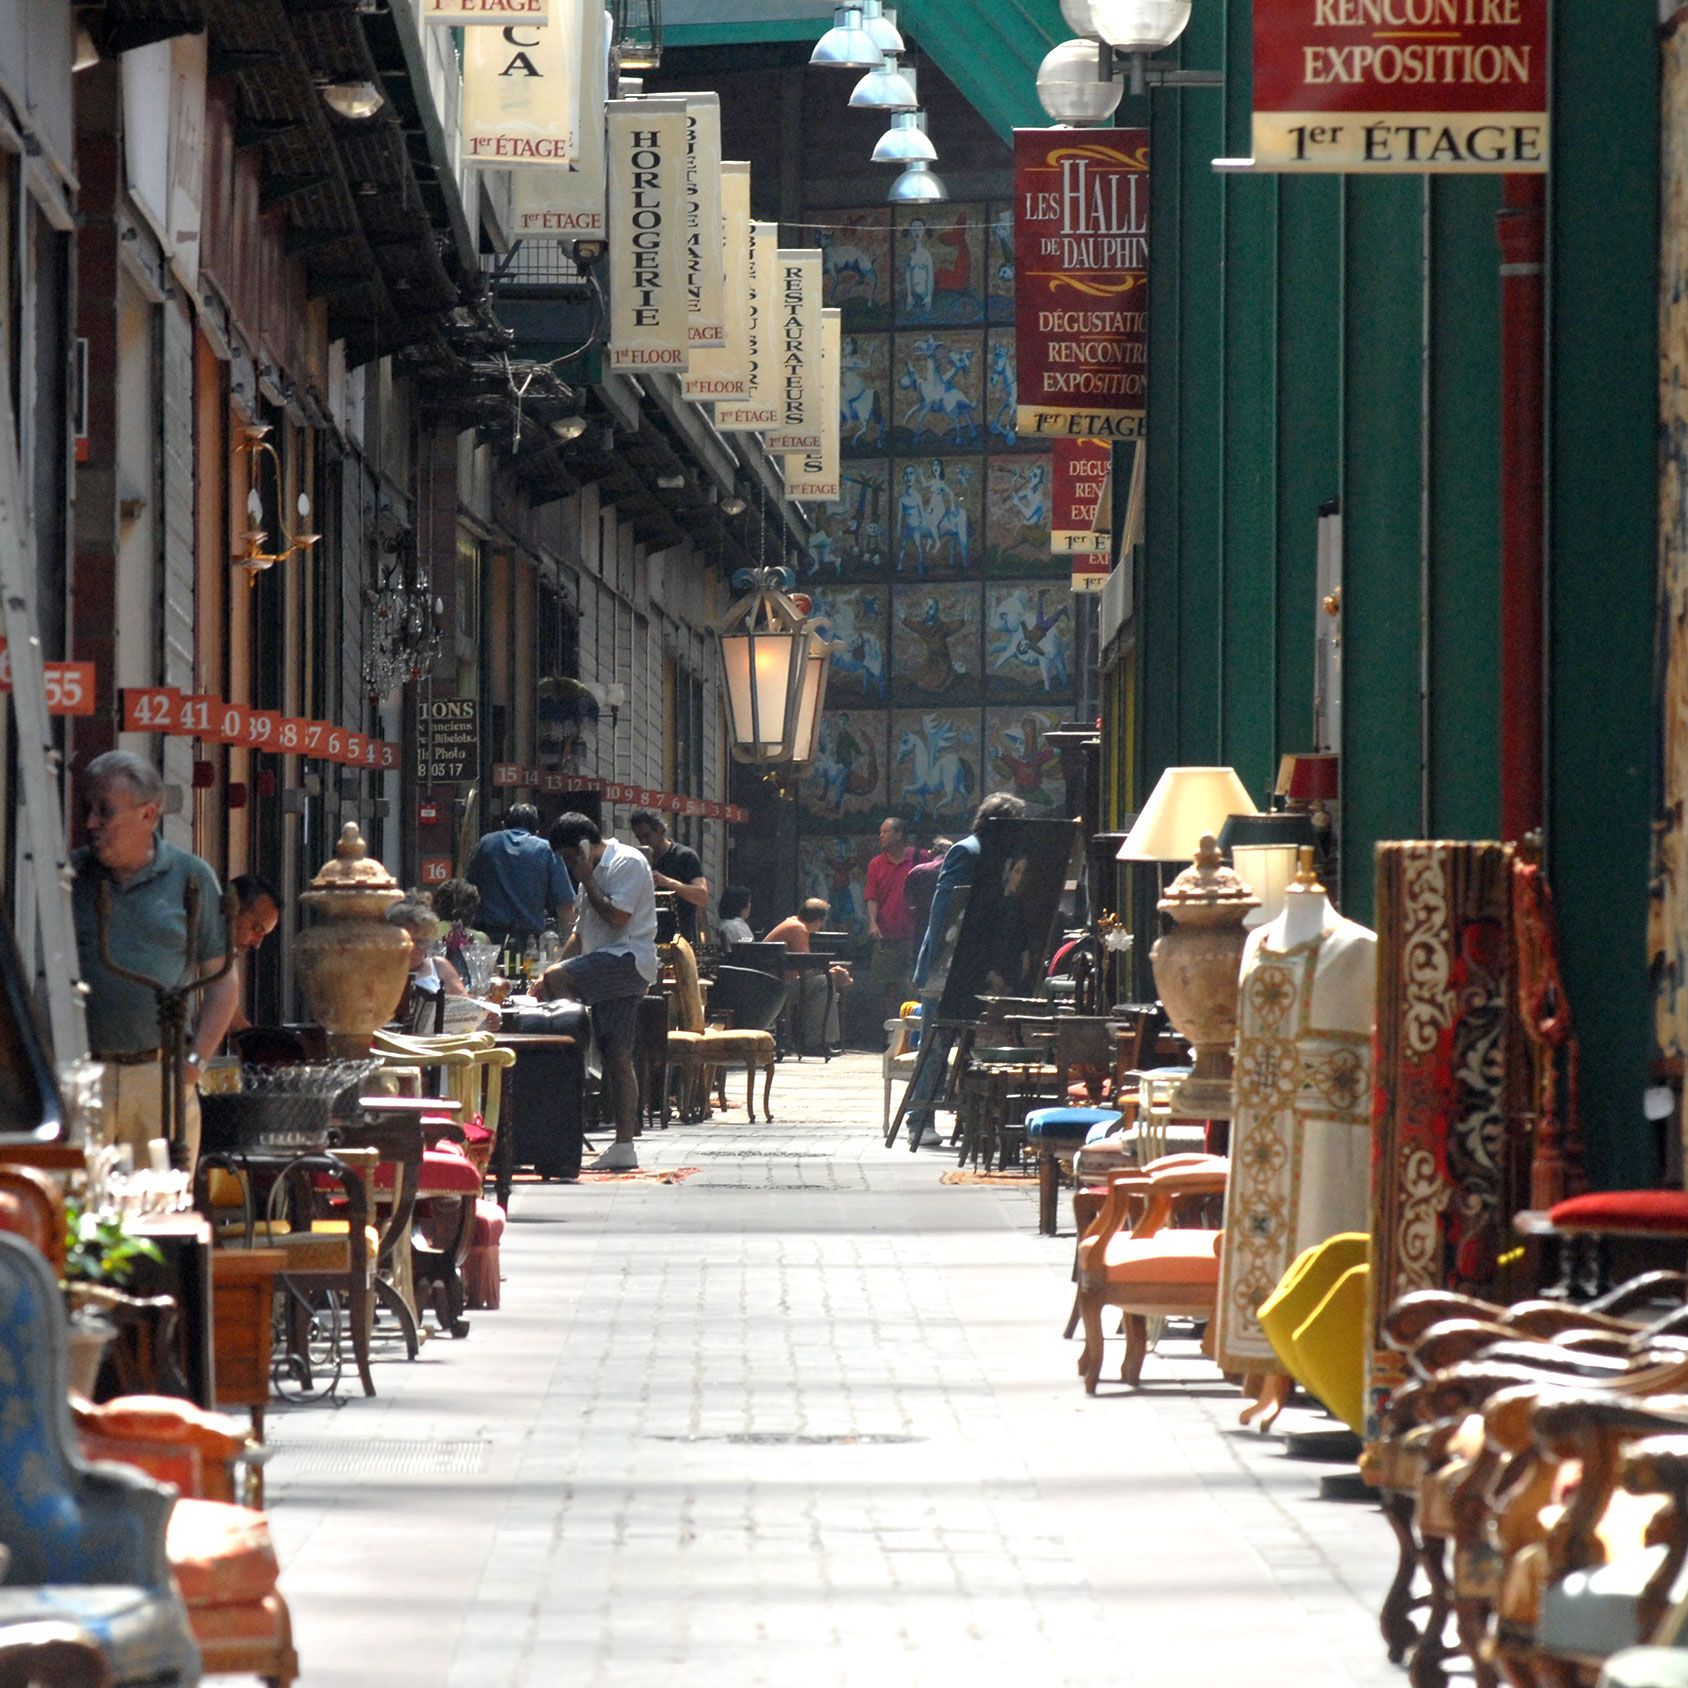 """""""Le Marché aux Puces in Paris is a must. It is not always as exciting as years past, but I never go away empty handed. Head straight to the Paul Bert section for Midcentury and trendier antiques. Many of the stalls are done up with great style."""""""